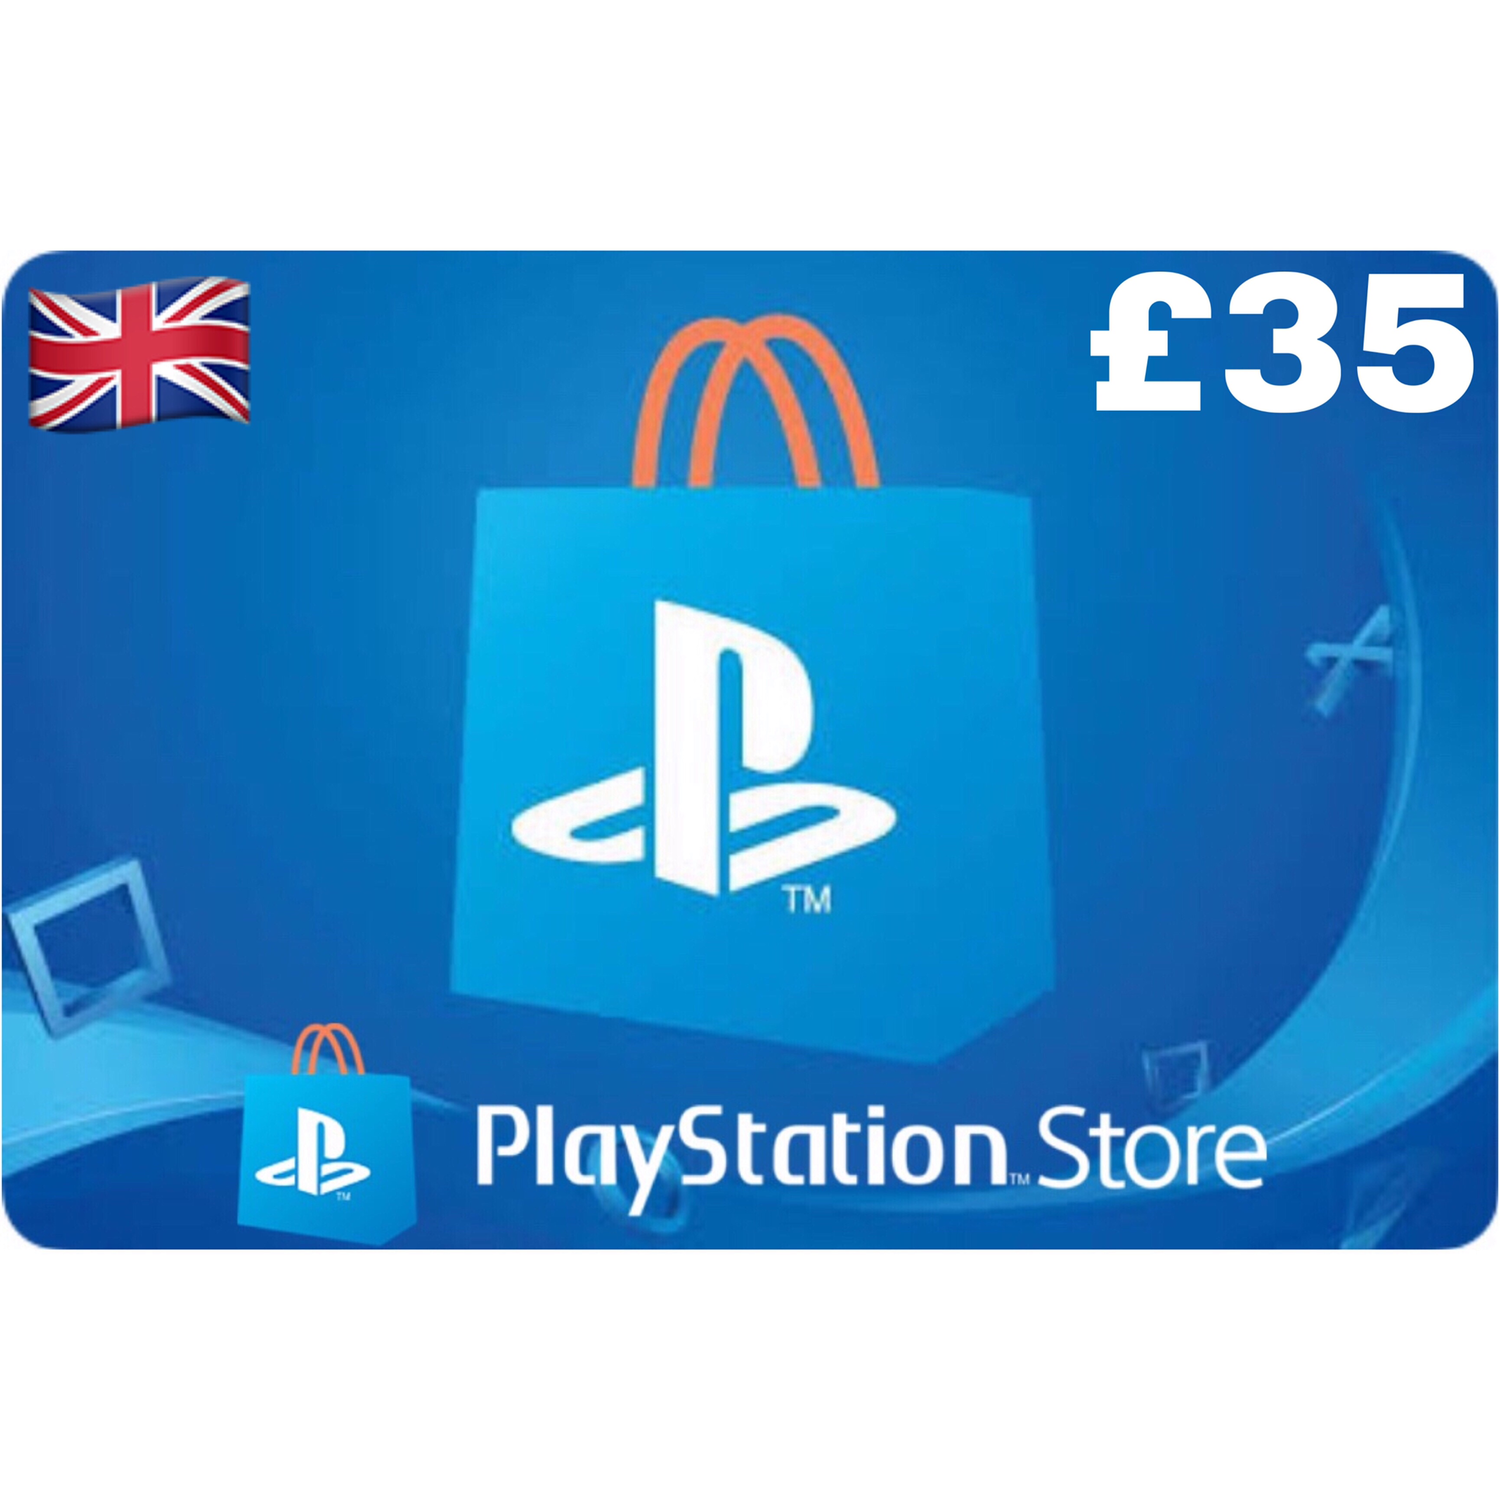 PSN Card - Playstation Network UK £35